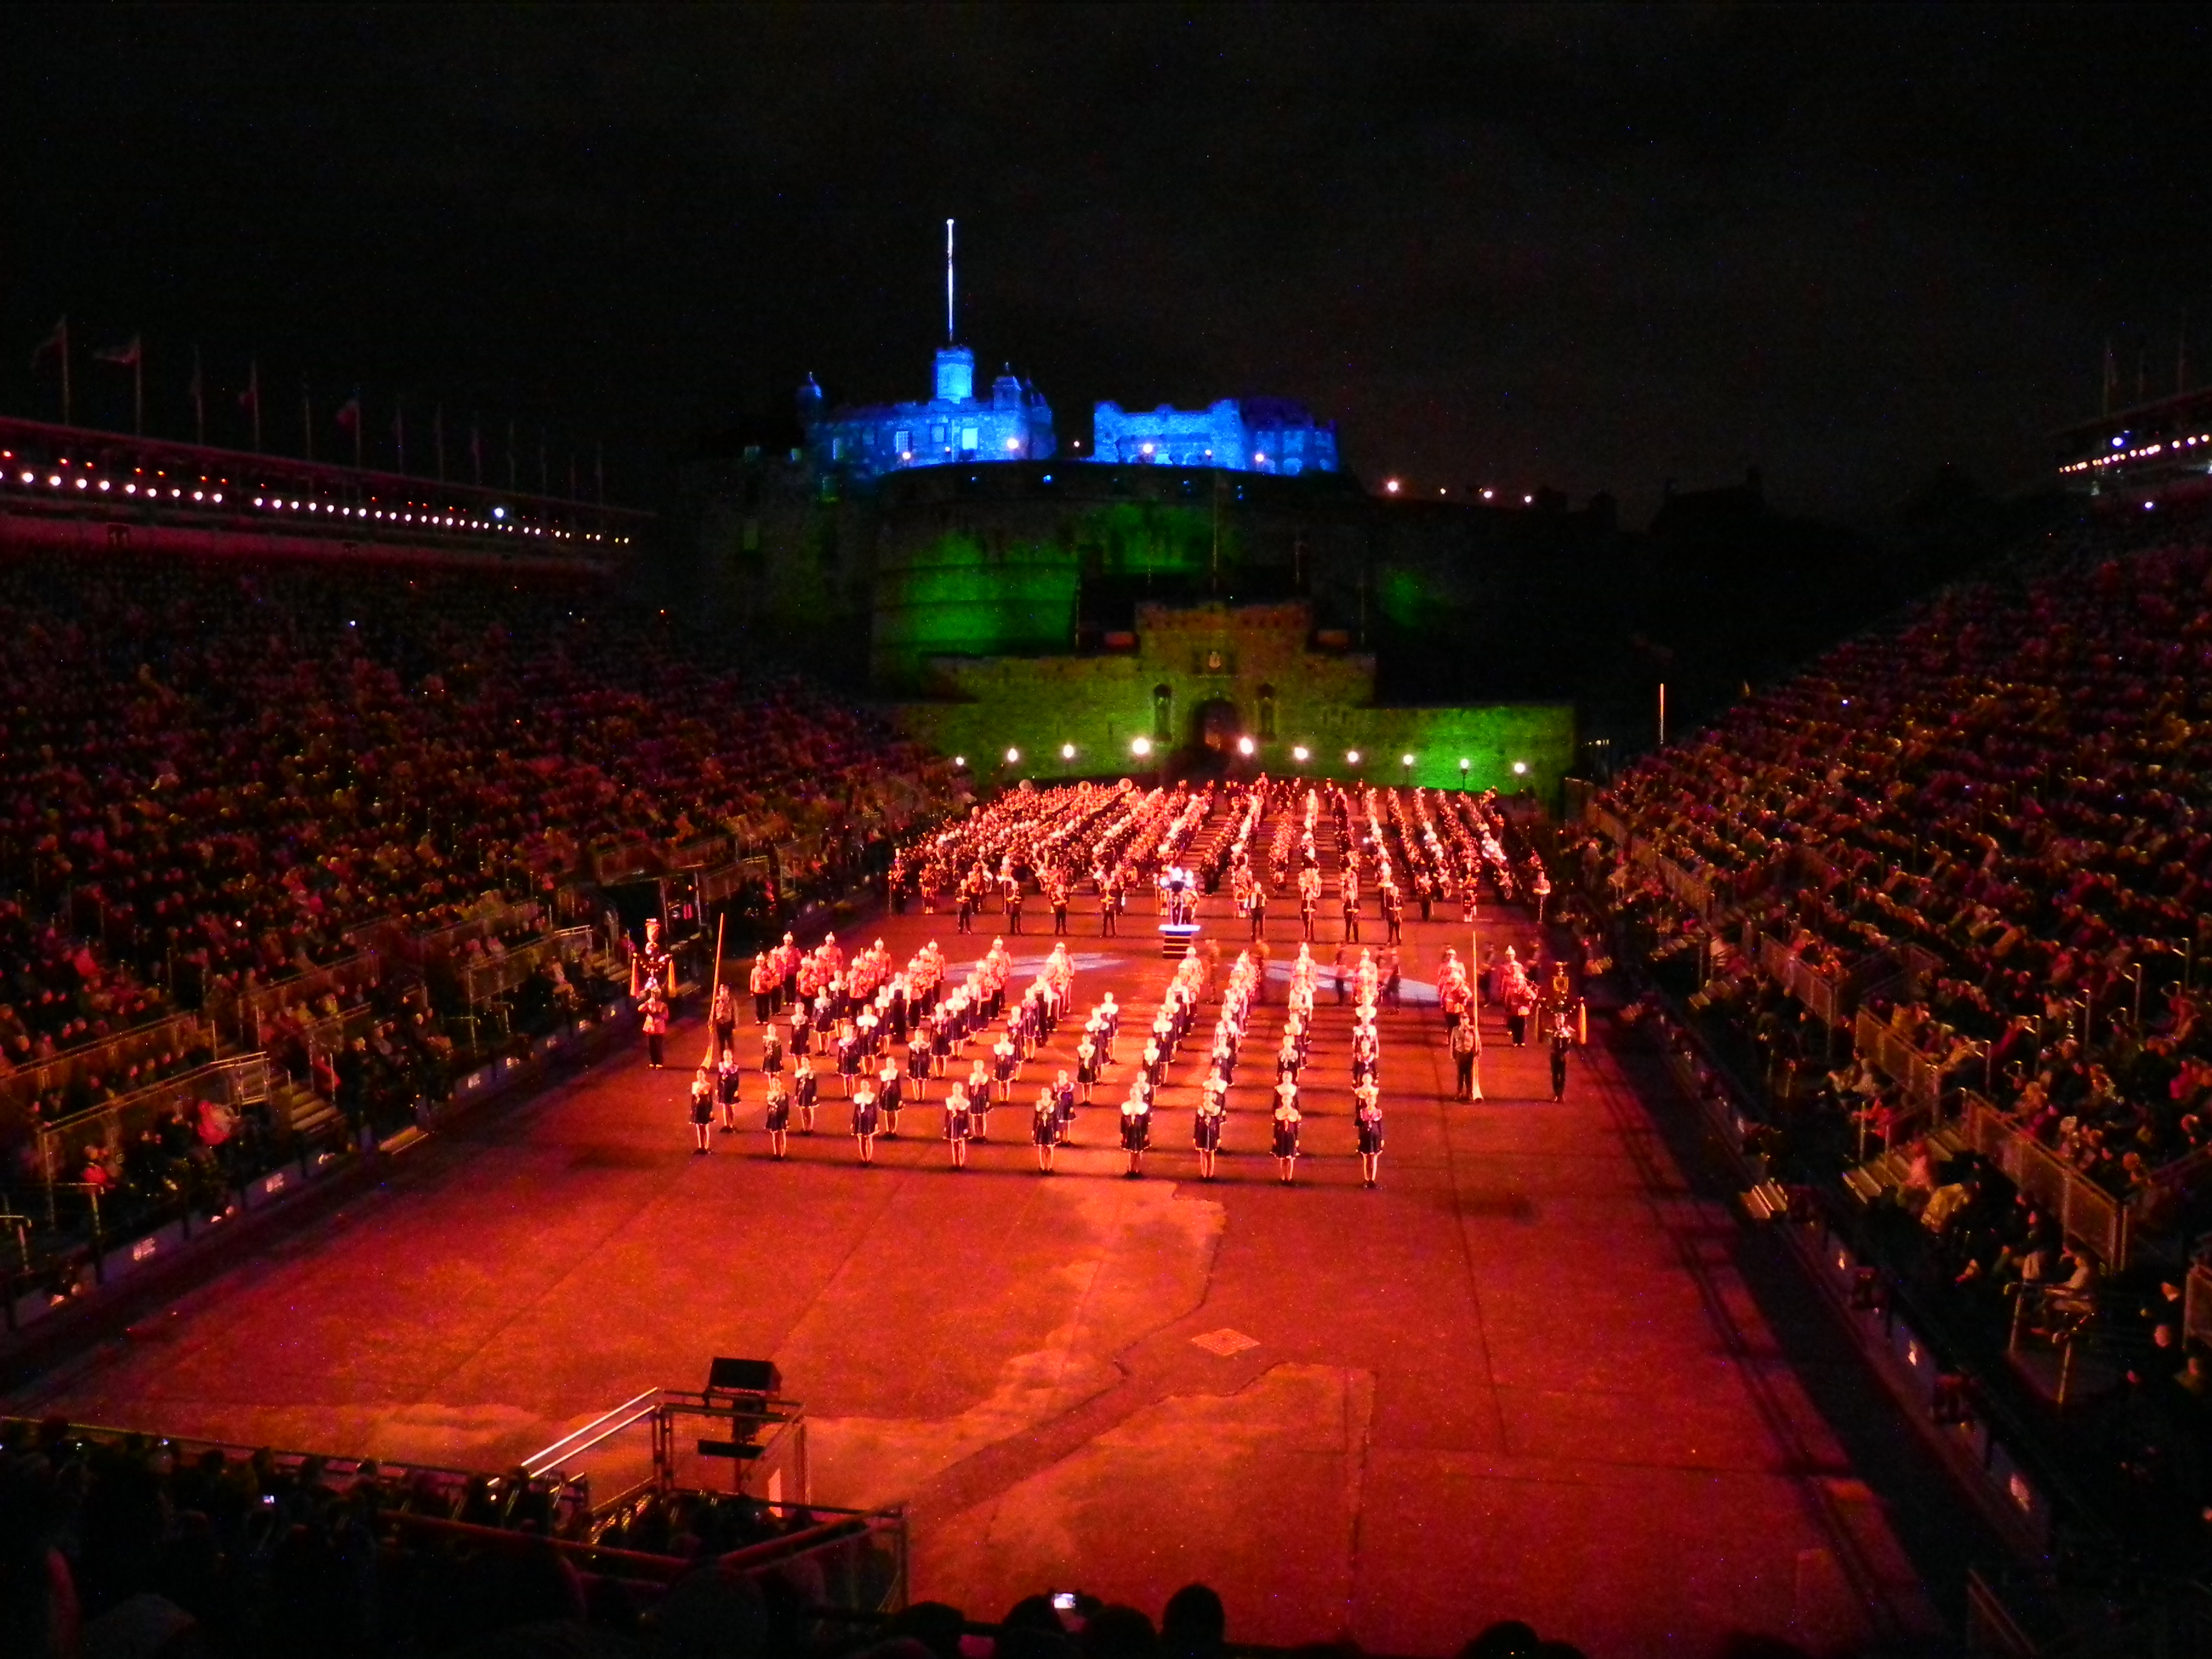 The Royal Edinburgh Military Tattoo 2011 - Final